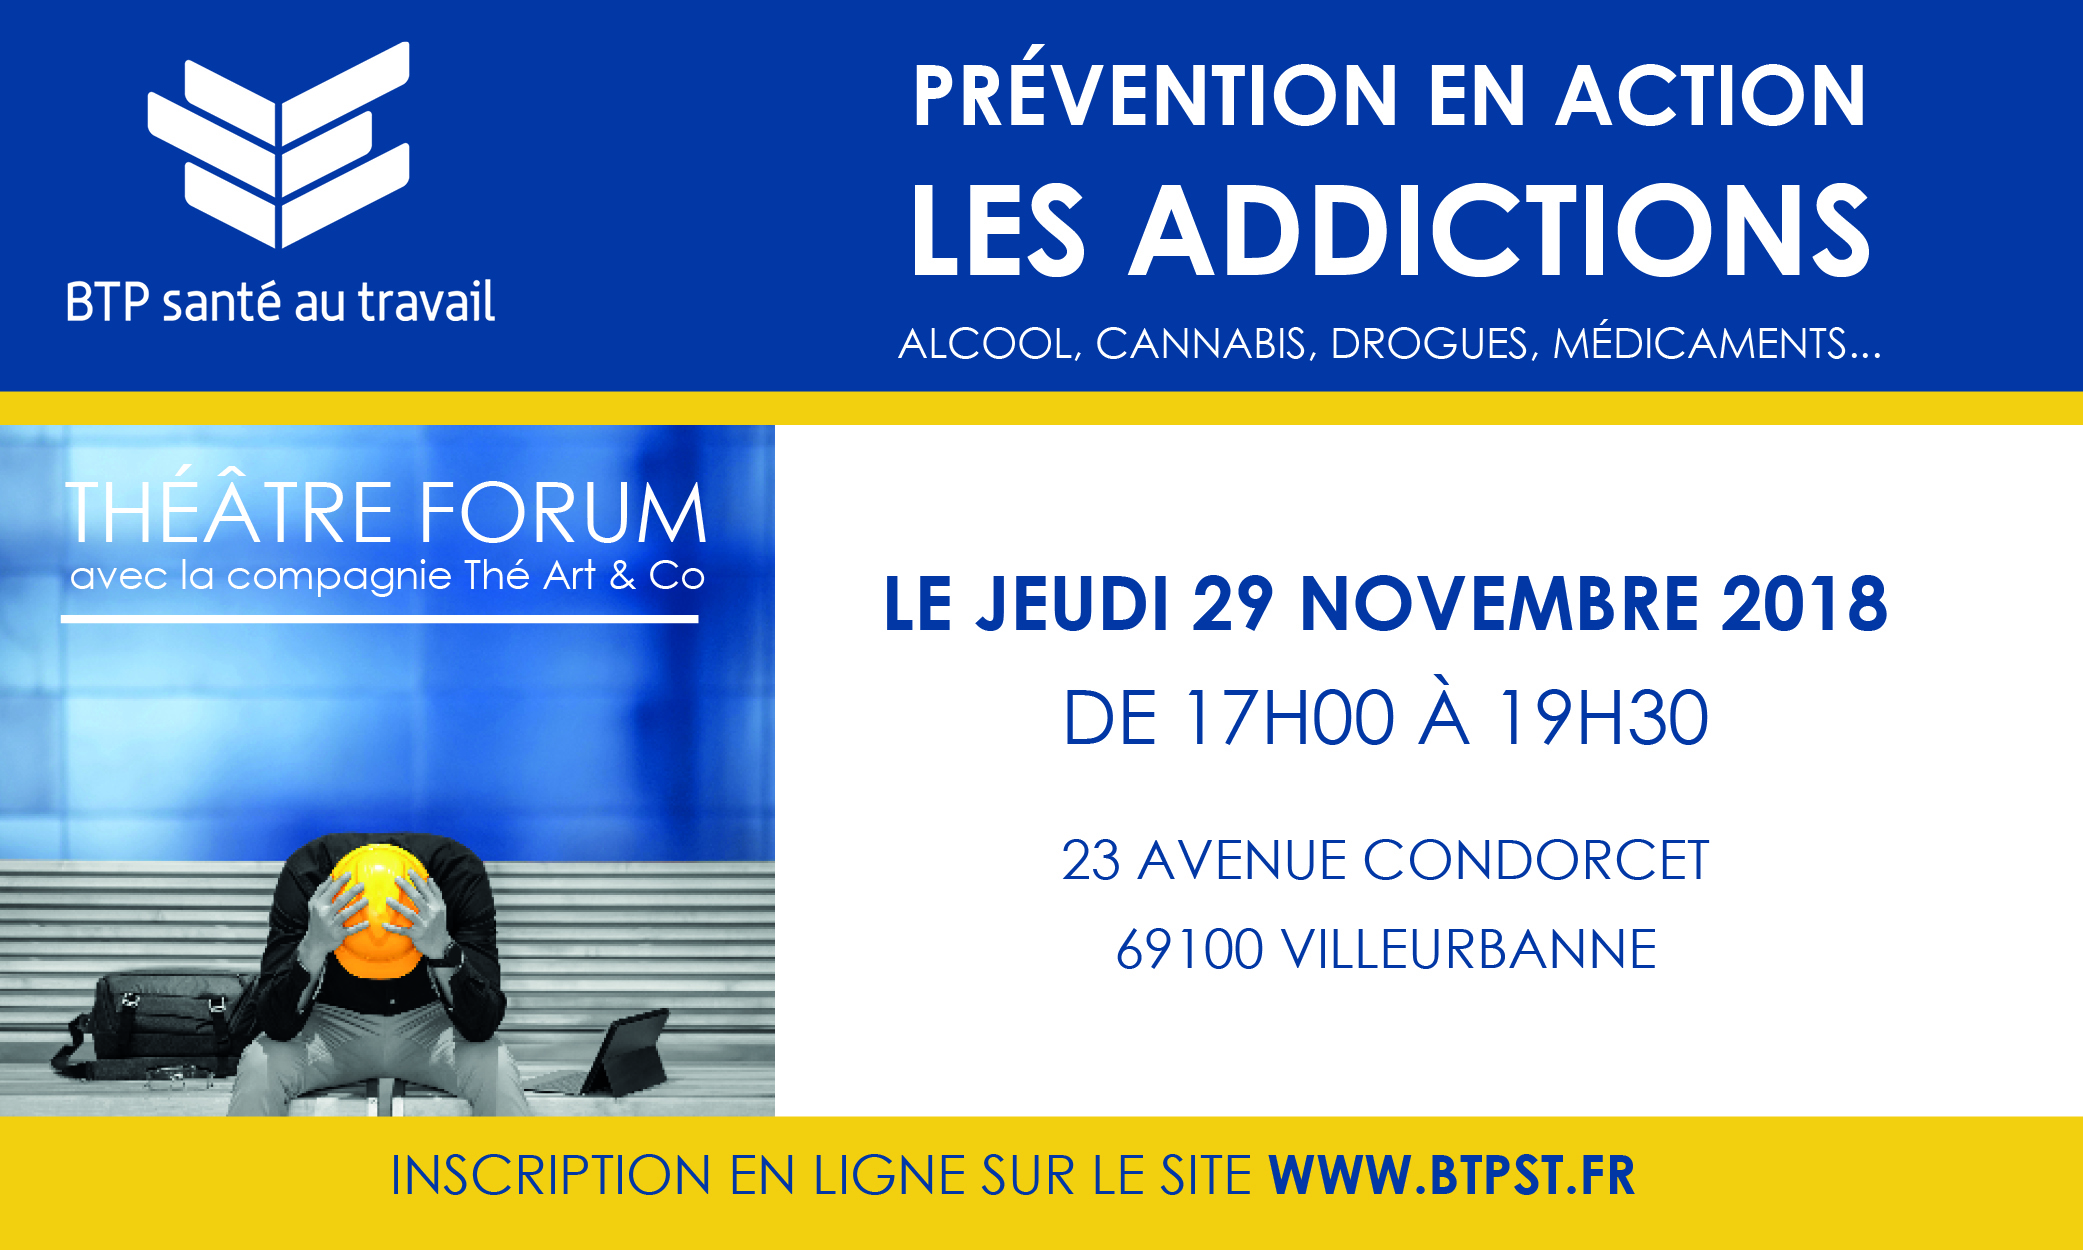 Annonce-web Thtre-Forum-Addictions